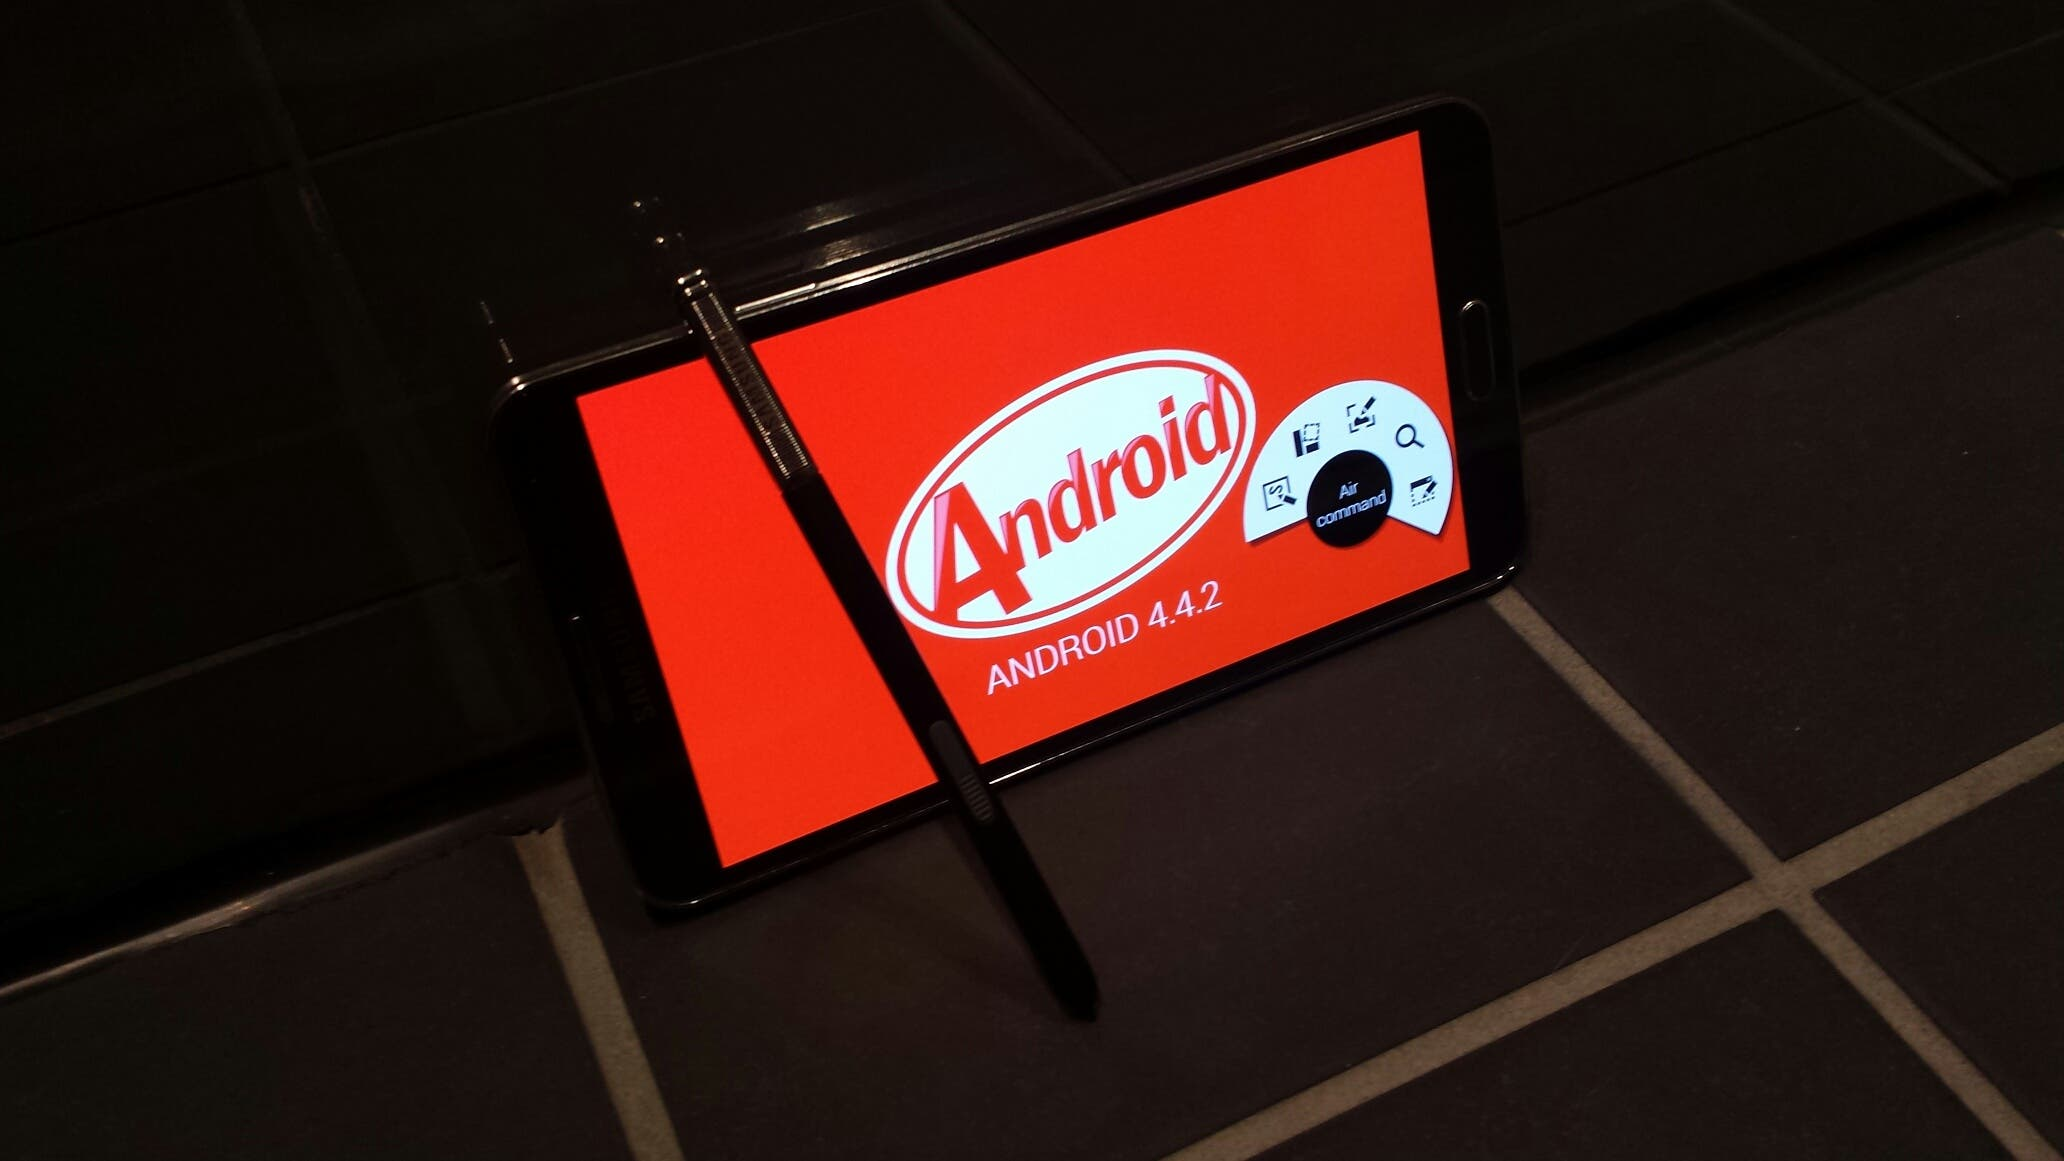 Test-Firmware mit Android 4.4.2 KitKat für Samsung Galaxy Note 3 – Roll-Out in Polen beginnt